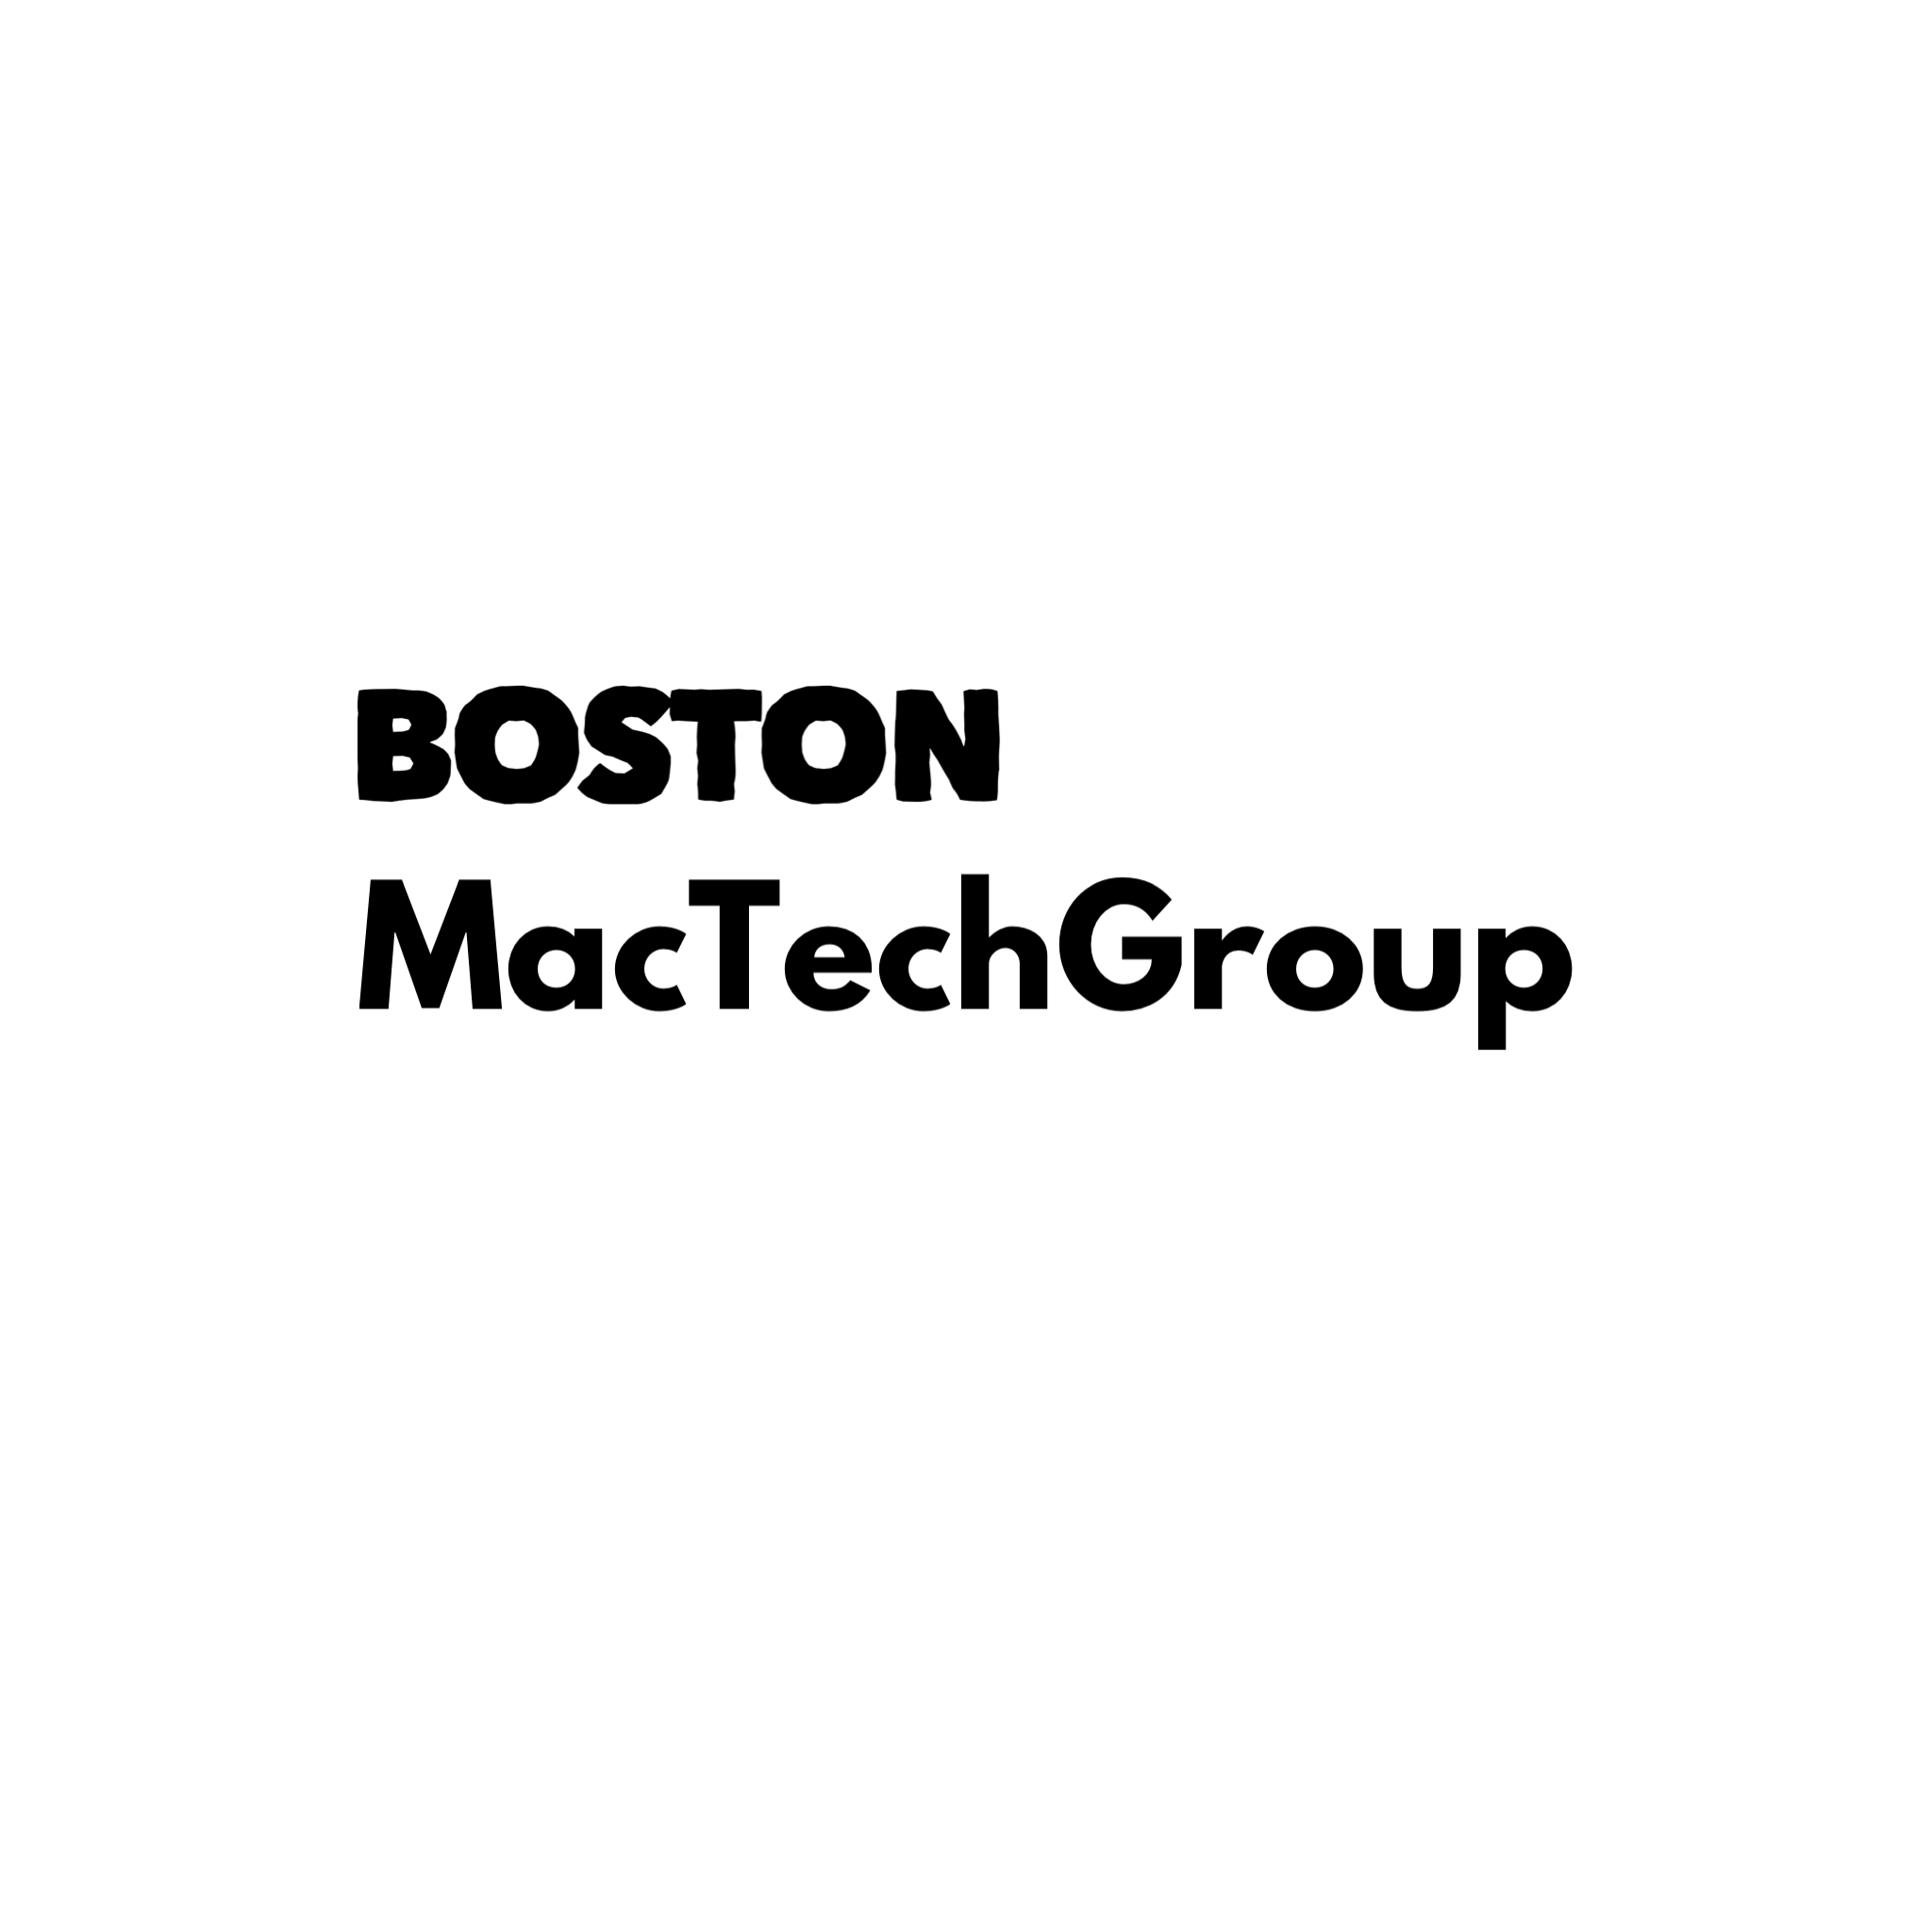 Boston MacTechGroup